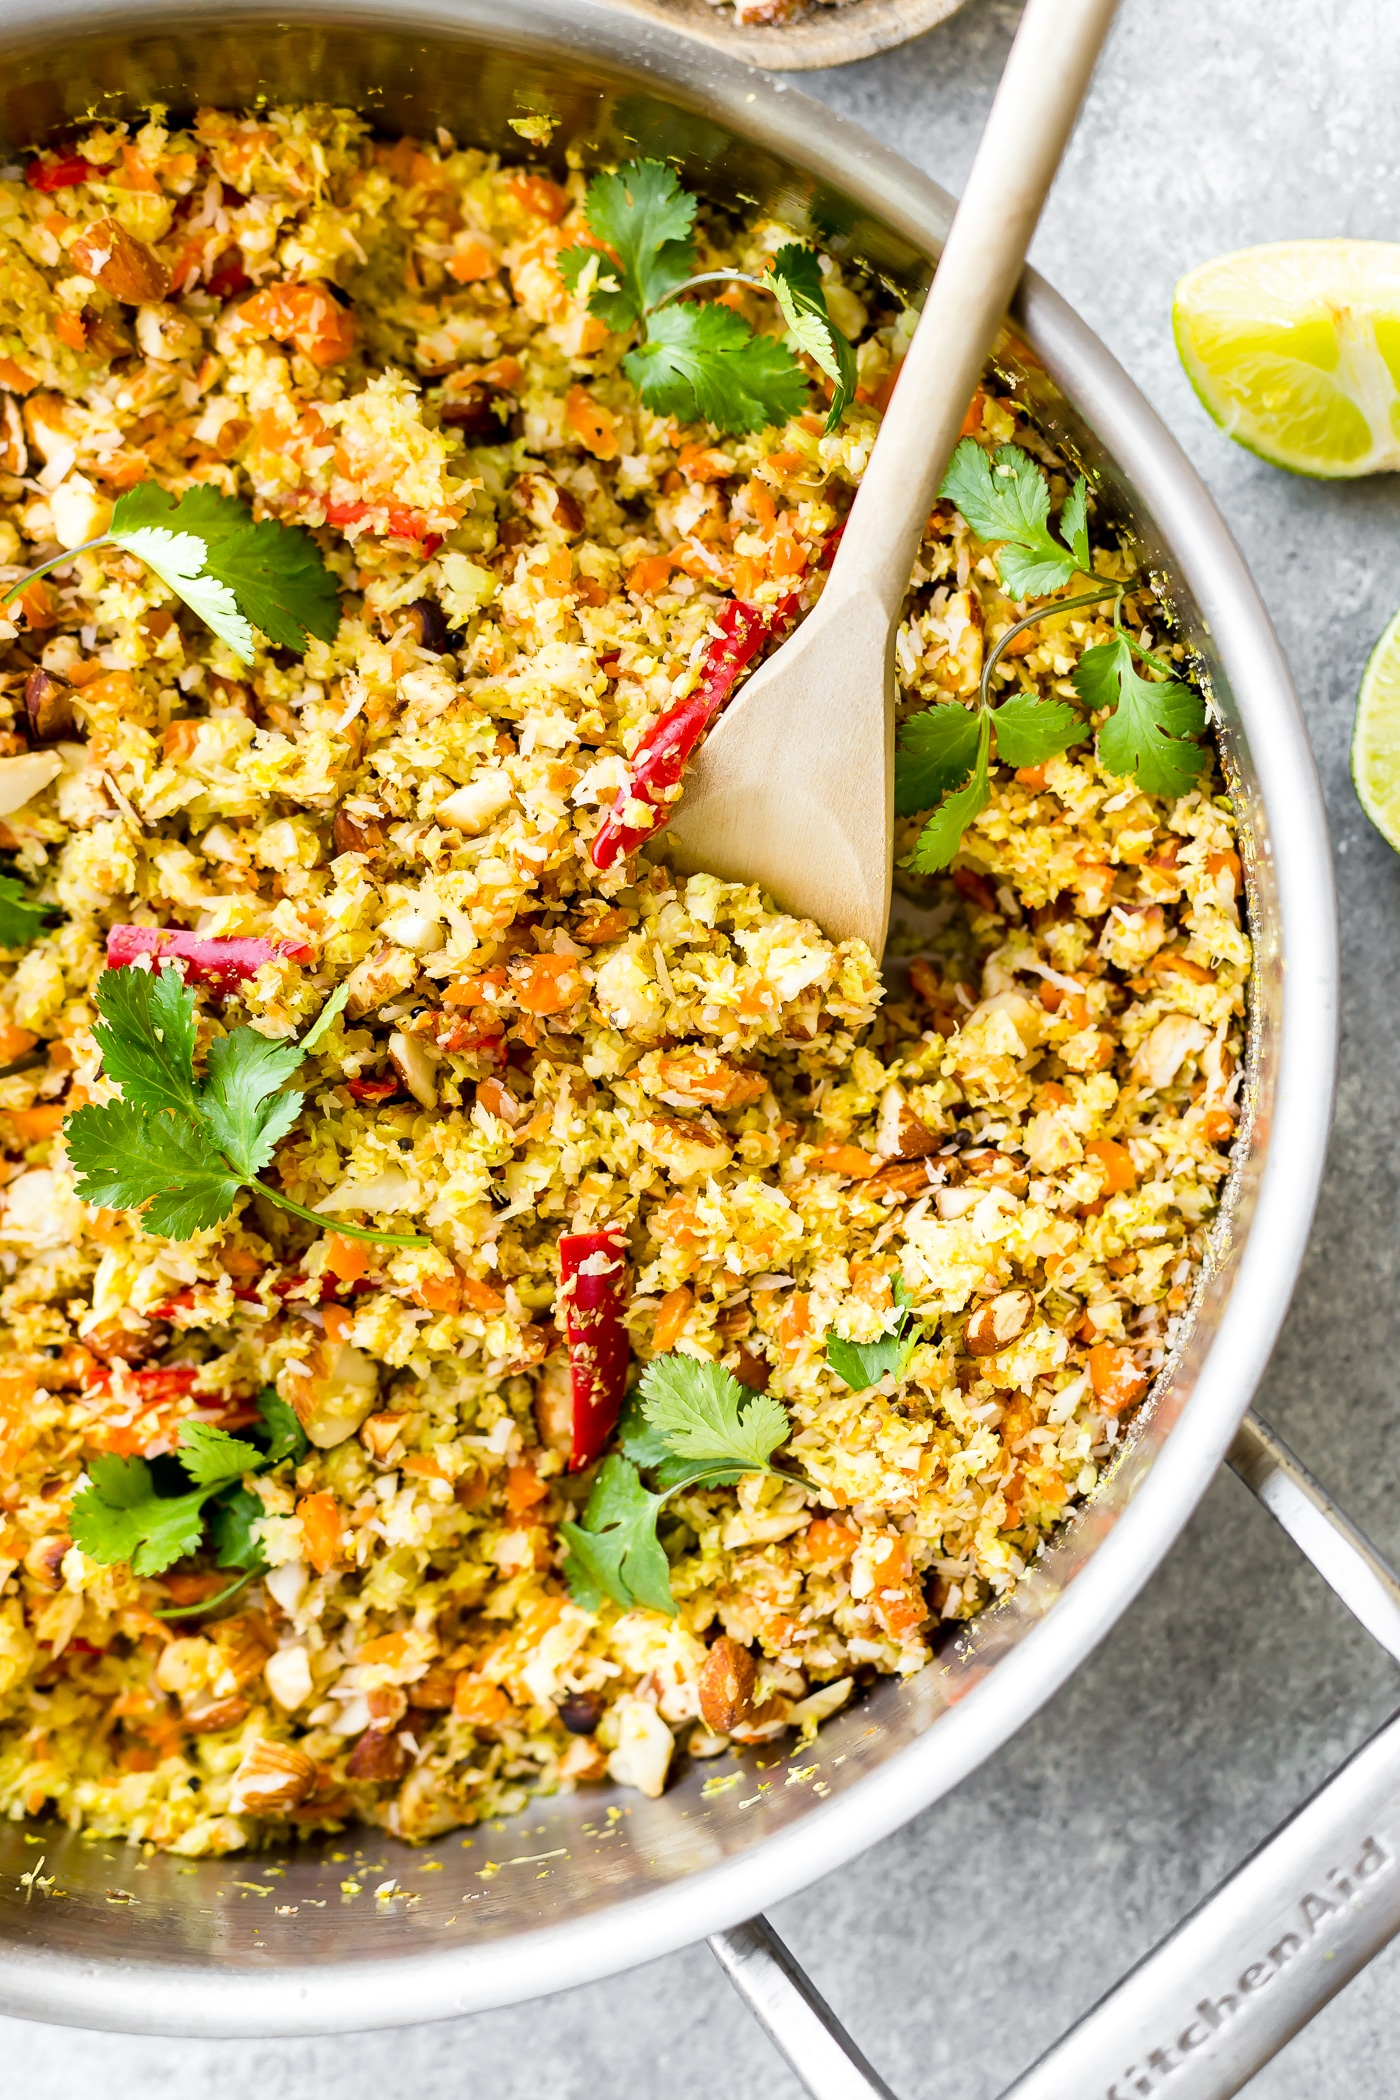 Gujarati Style Coconut Almond Warm Cabbage Salad is a healthy plant baseddinner side or main! A spicy, sweet, crunchy, flavorful Indian inspiredcabbage saladto enjoy at any meal. Pot luck friendly and easyto make! Paleo, Vegan, and even a Whole 30 option.